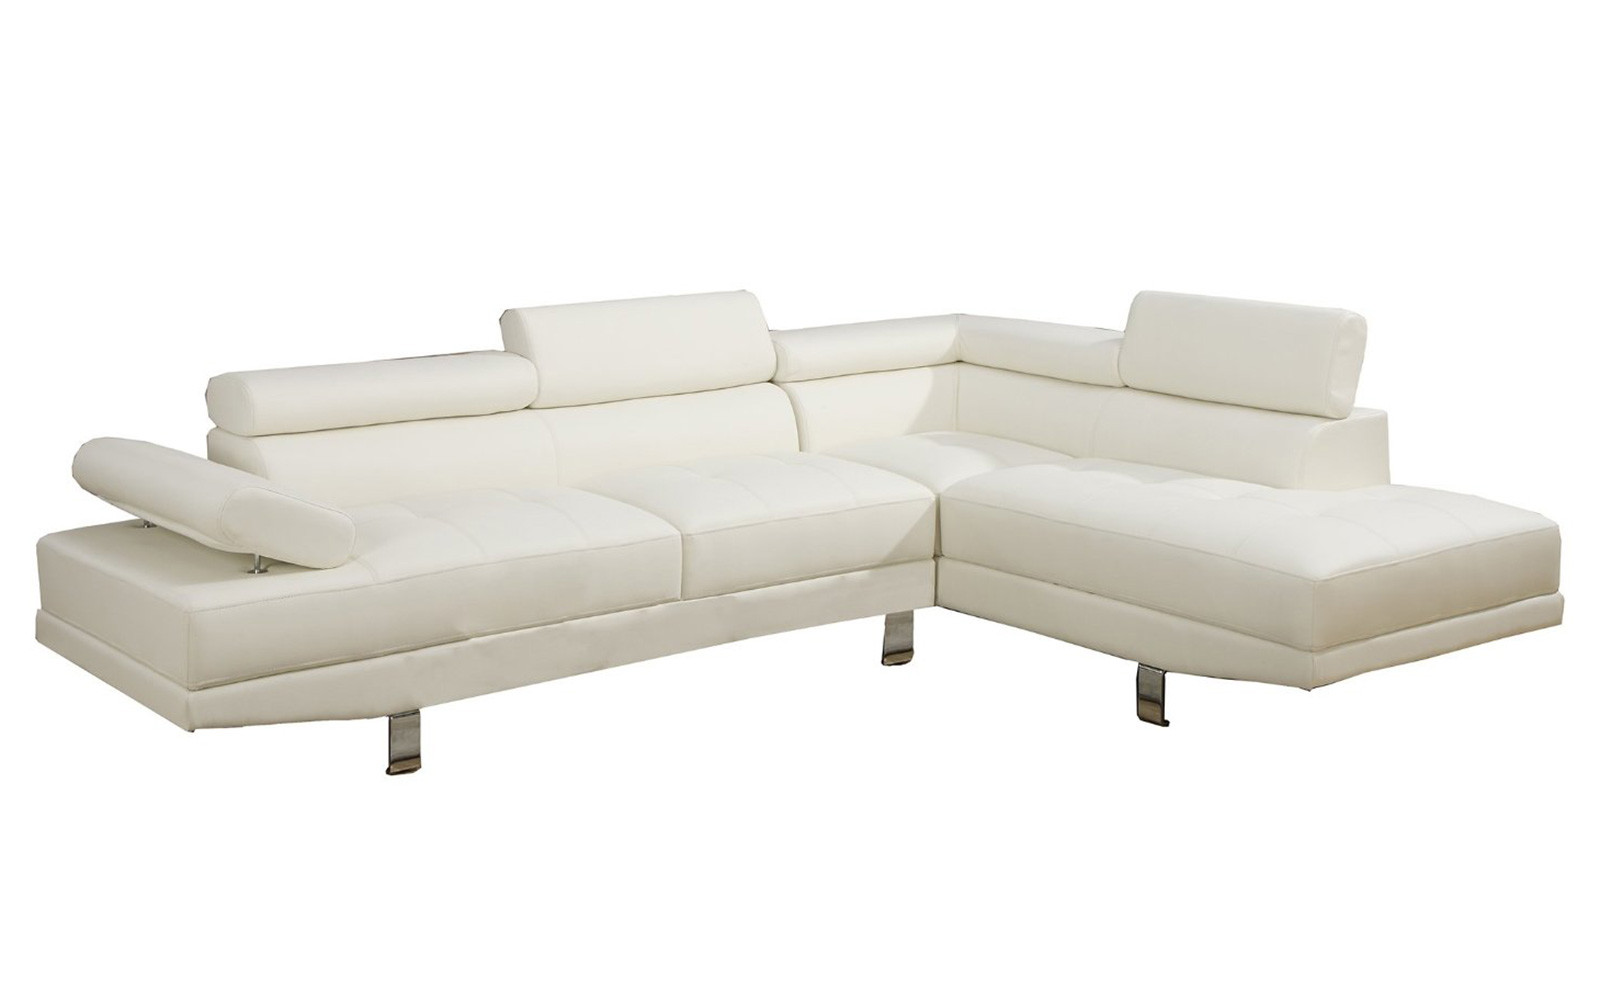 2 Piece Modern Bonded Leather Right Facing Chaise Sectional Sofa    Walmart.com